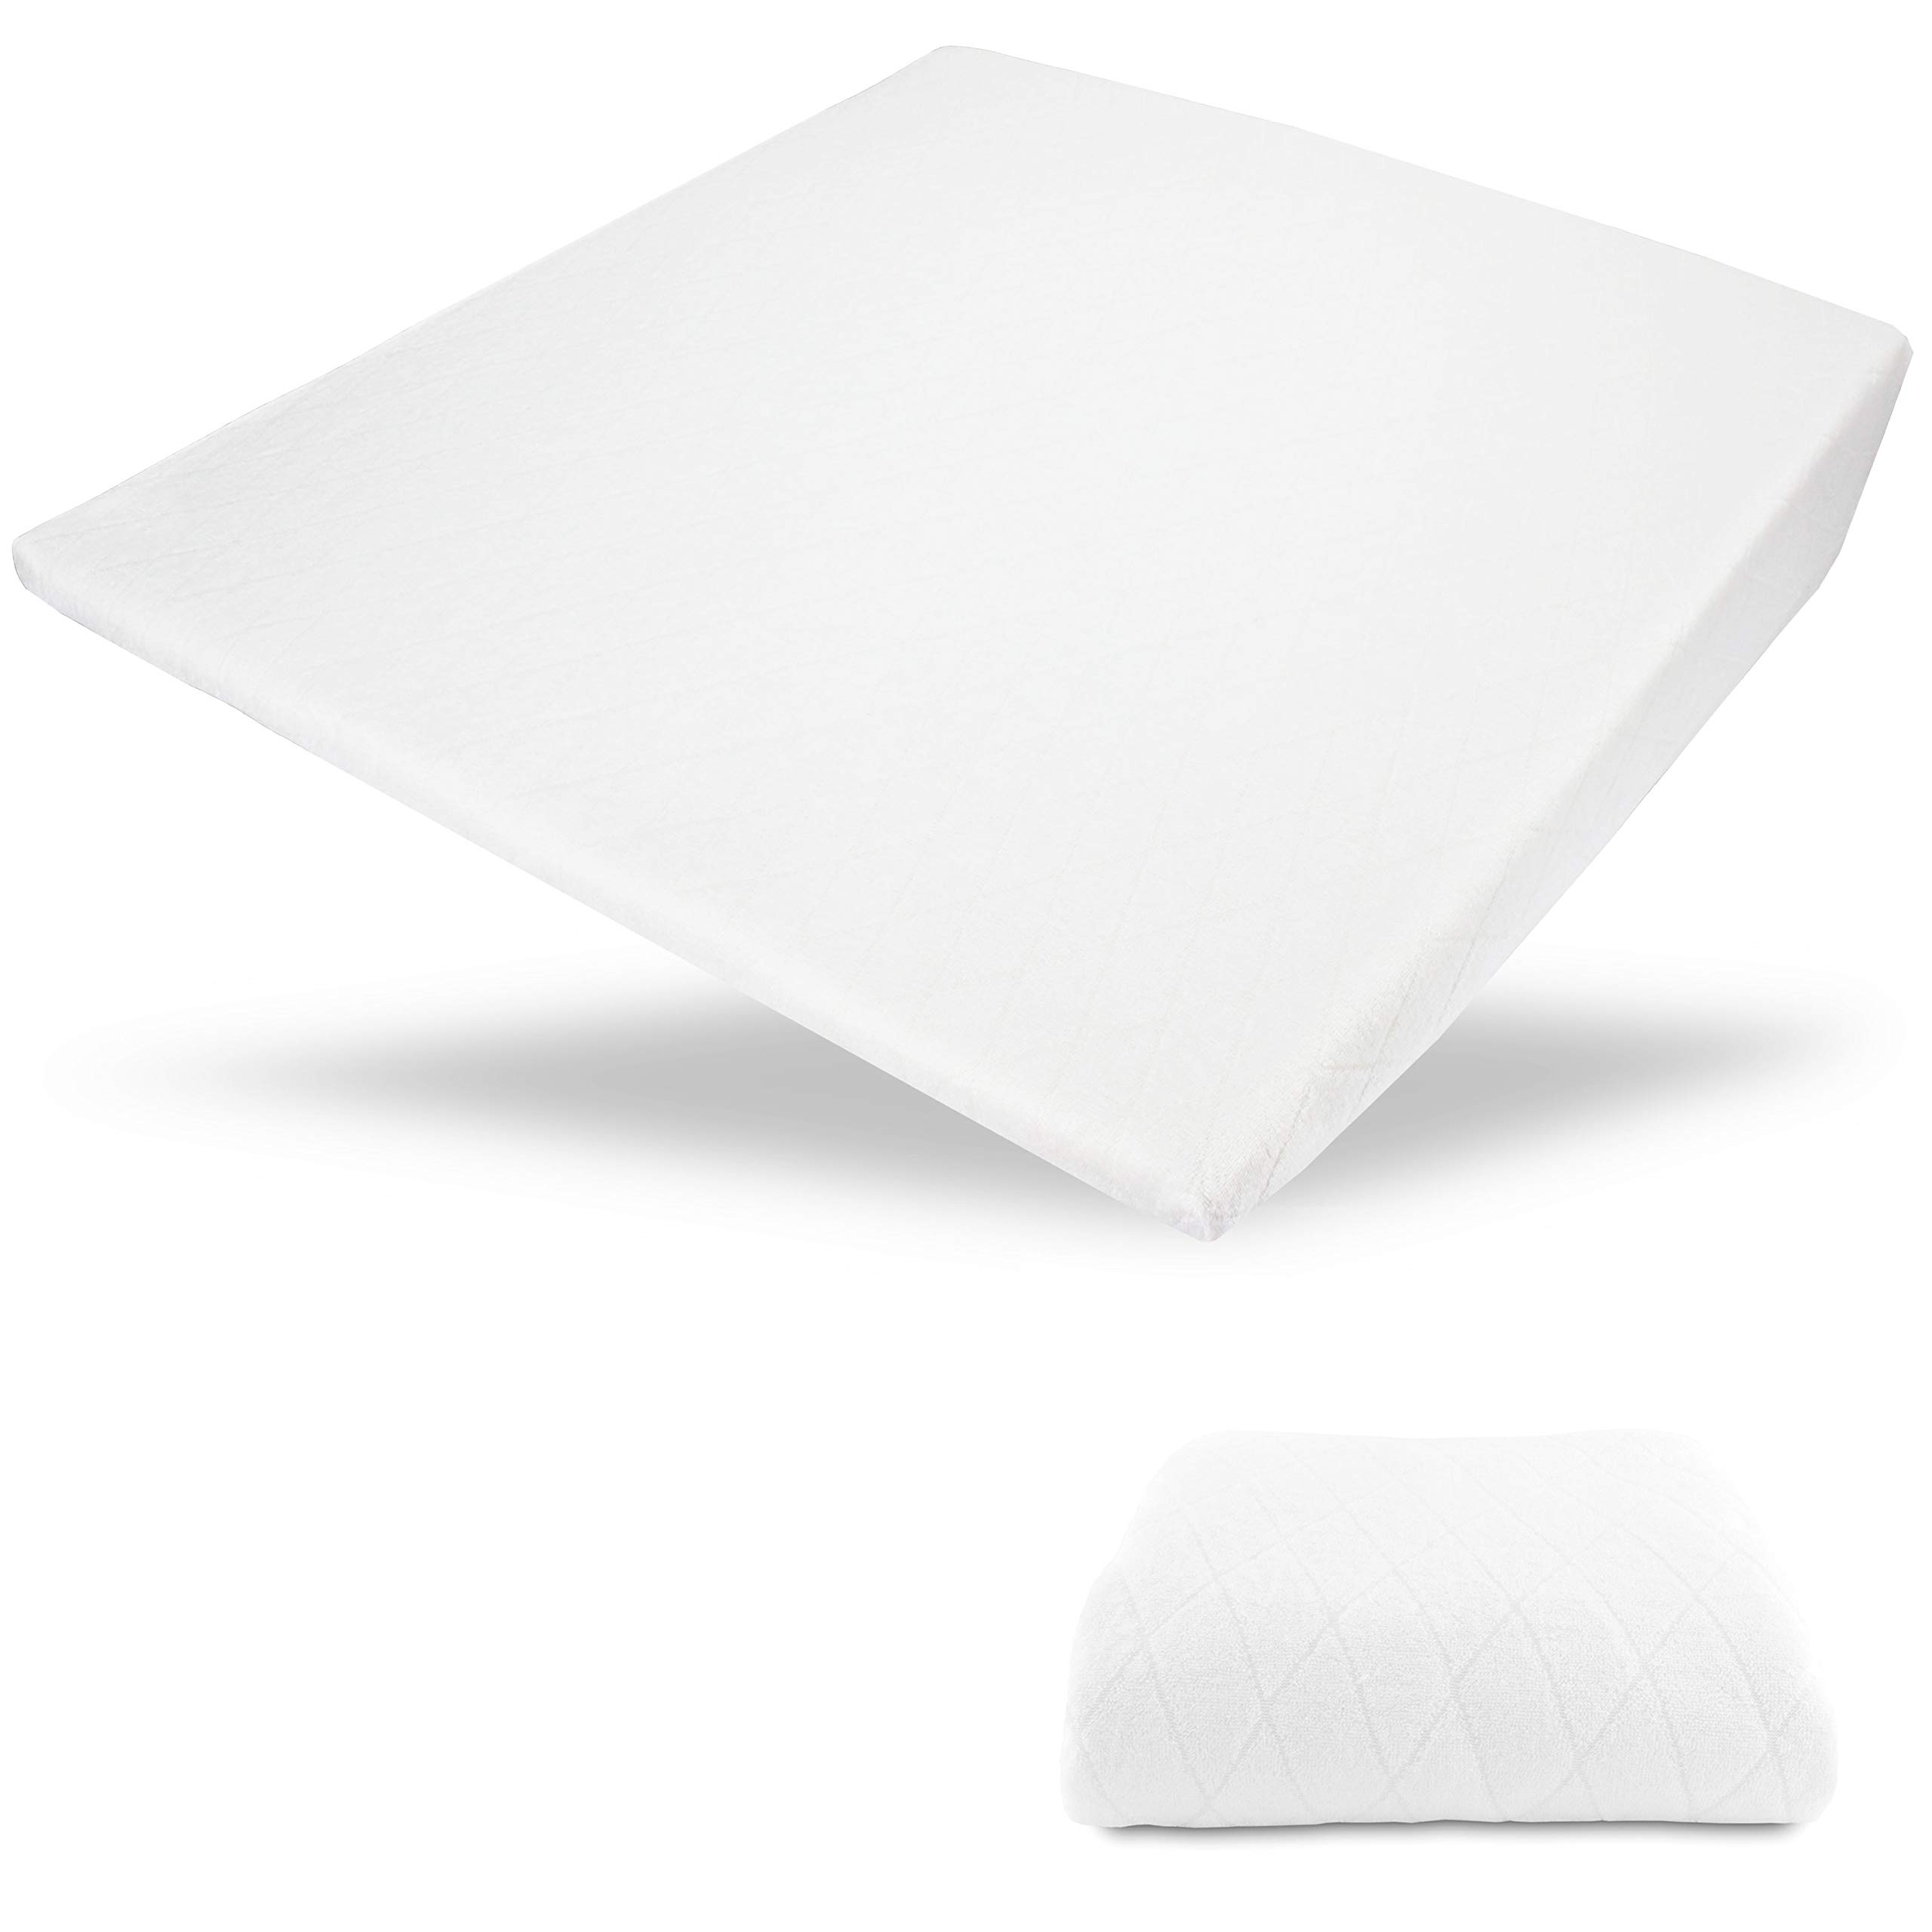 Acid Reflux Wedge Pillow - USA Made with Memory Foam Overlay and Removable Microfiber Cover''BIG'' by Medslant. Recommended size for GERD and other sleep issues.